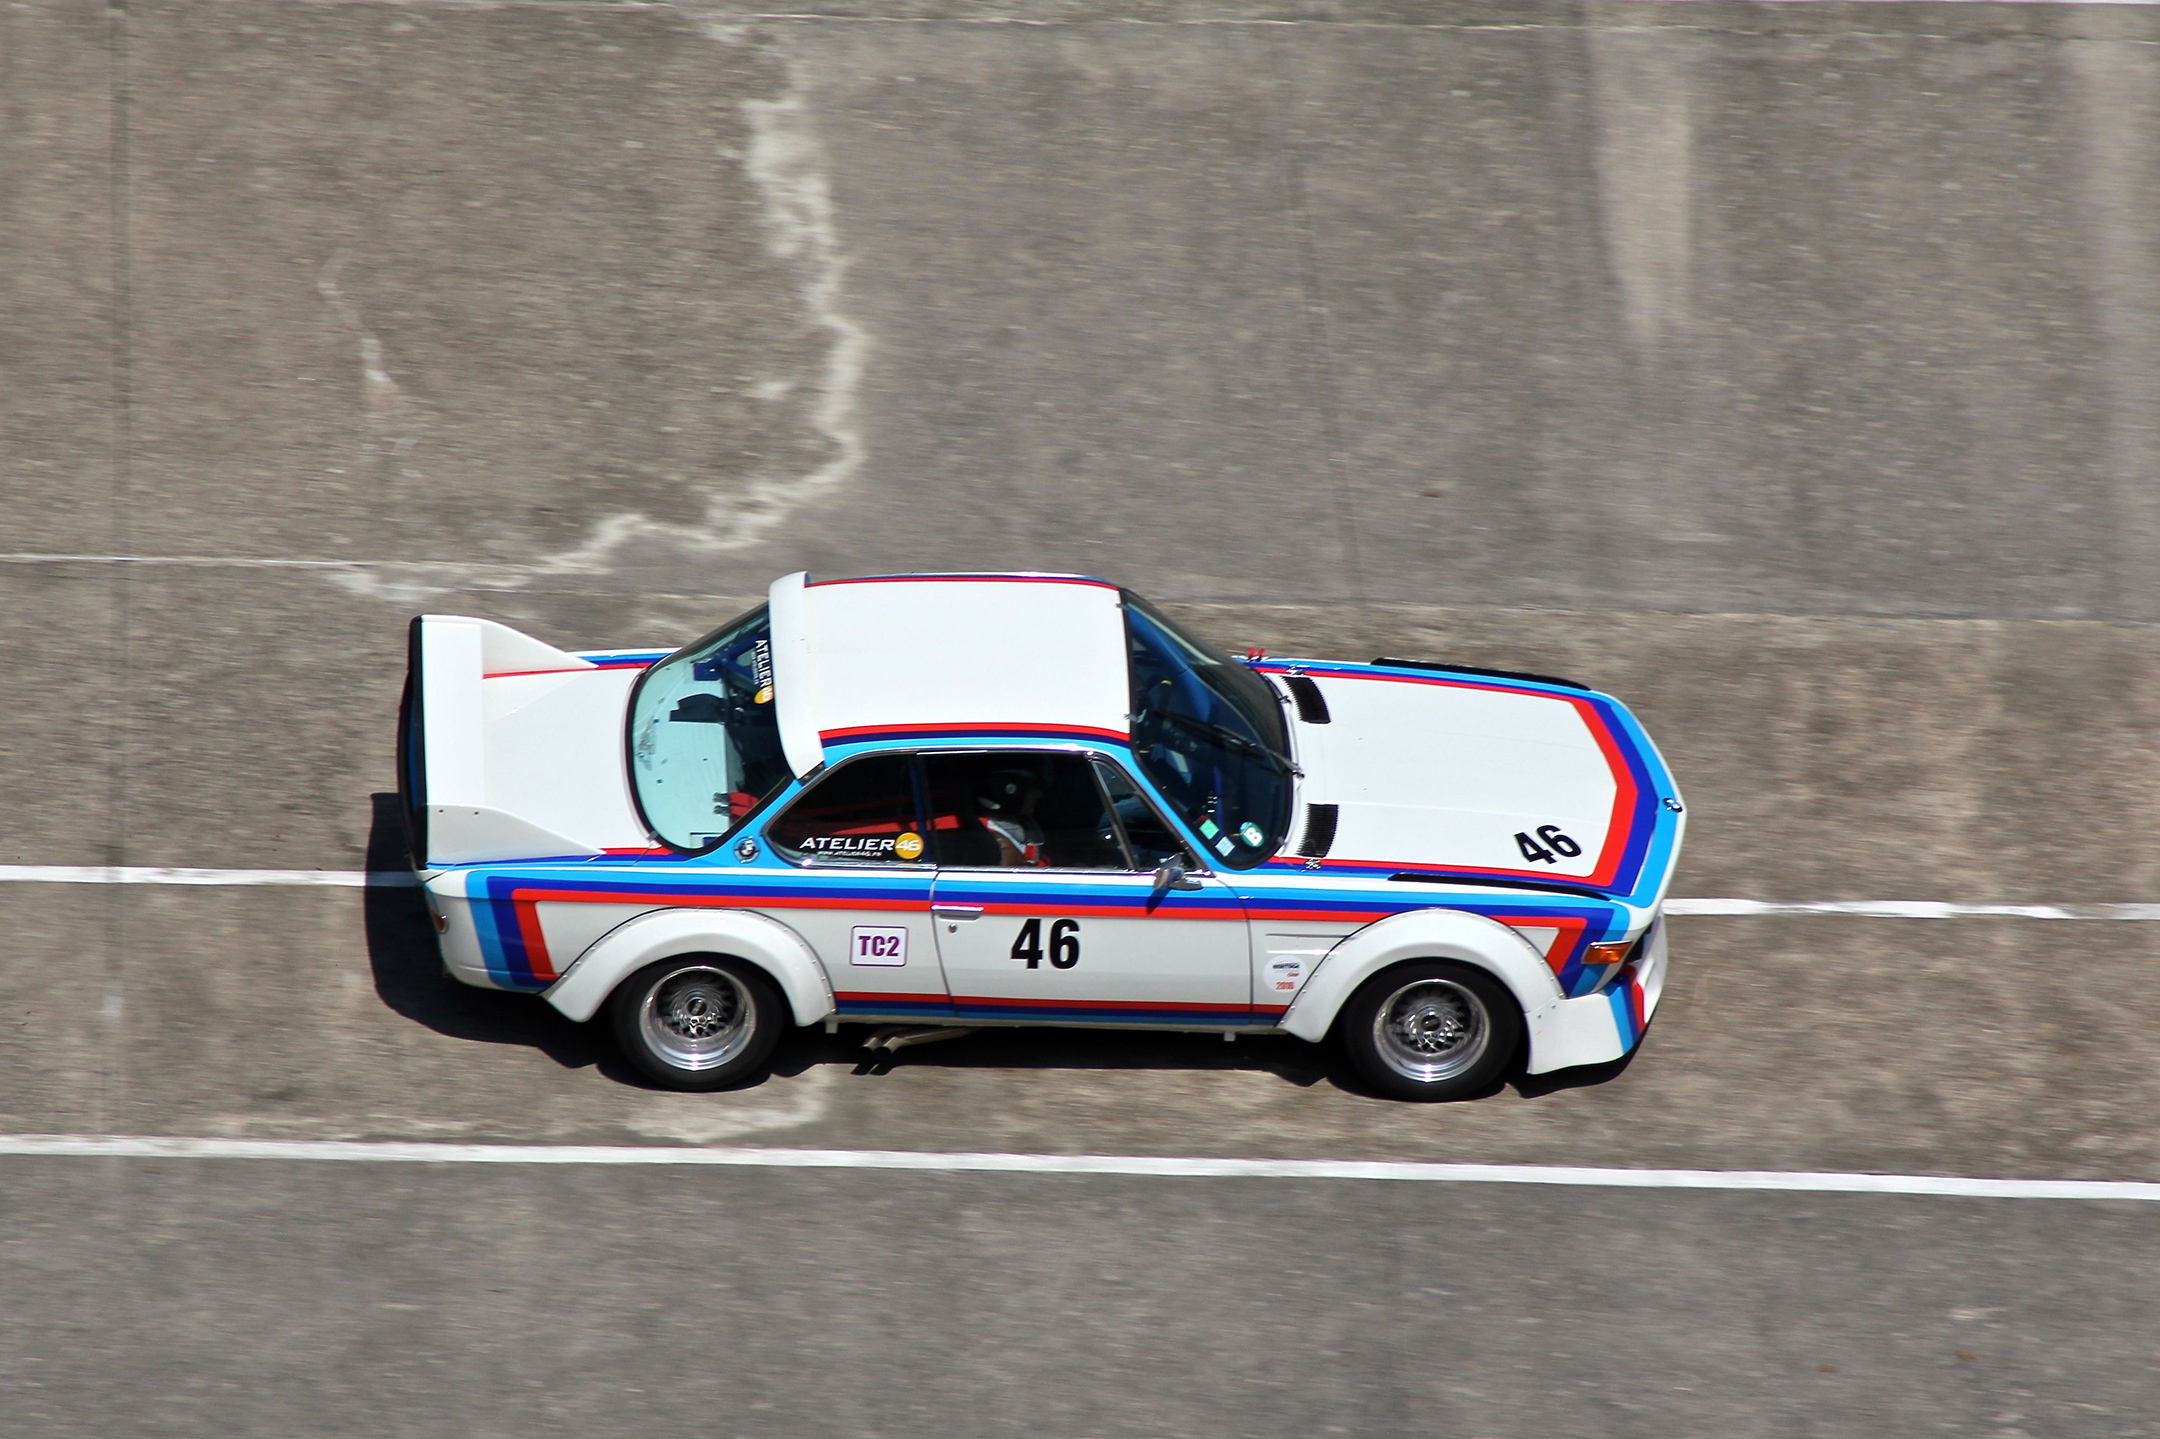 BMW 3.0 CSL - front / avant - Coupes de Printemps 2017 - photo Ludo Ferrari